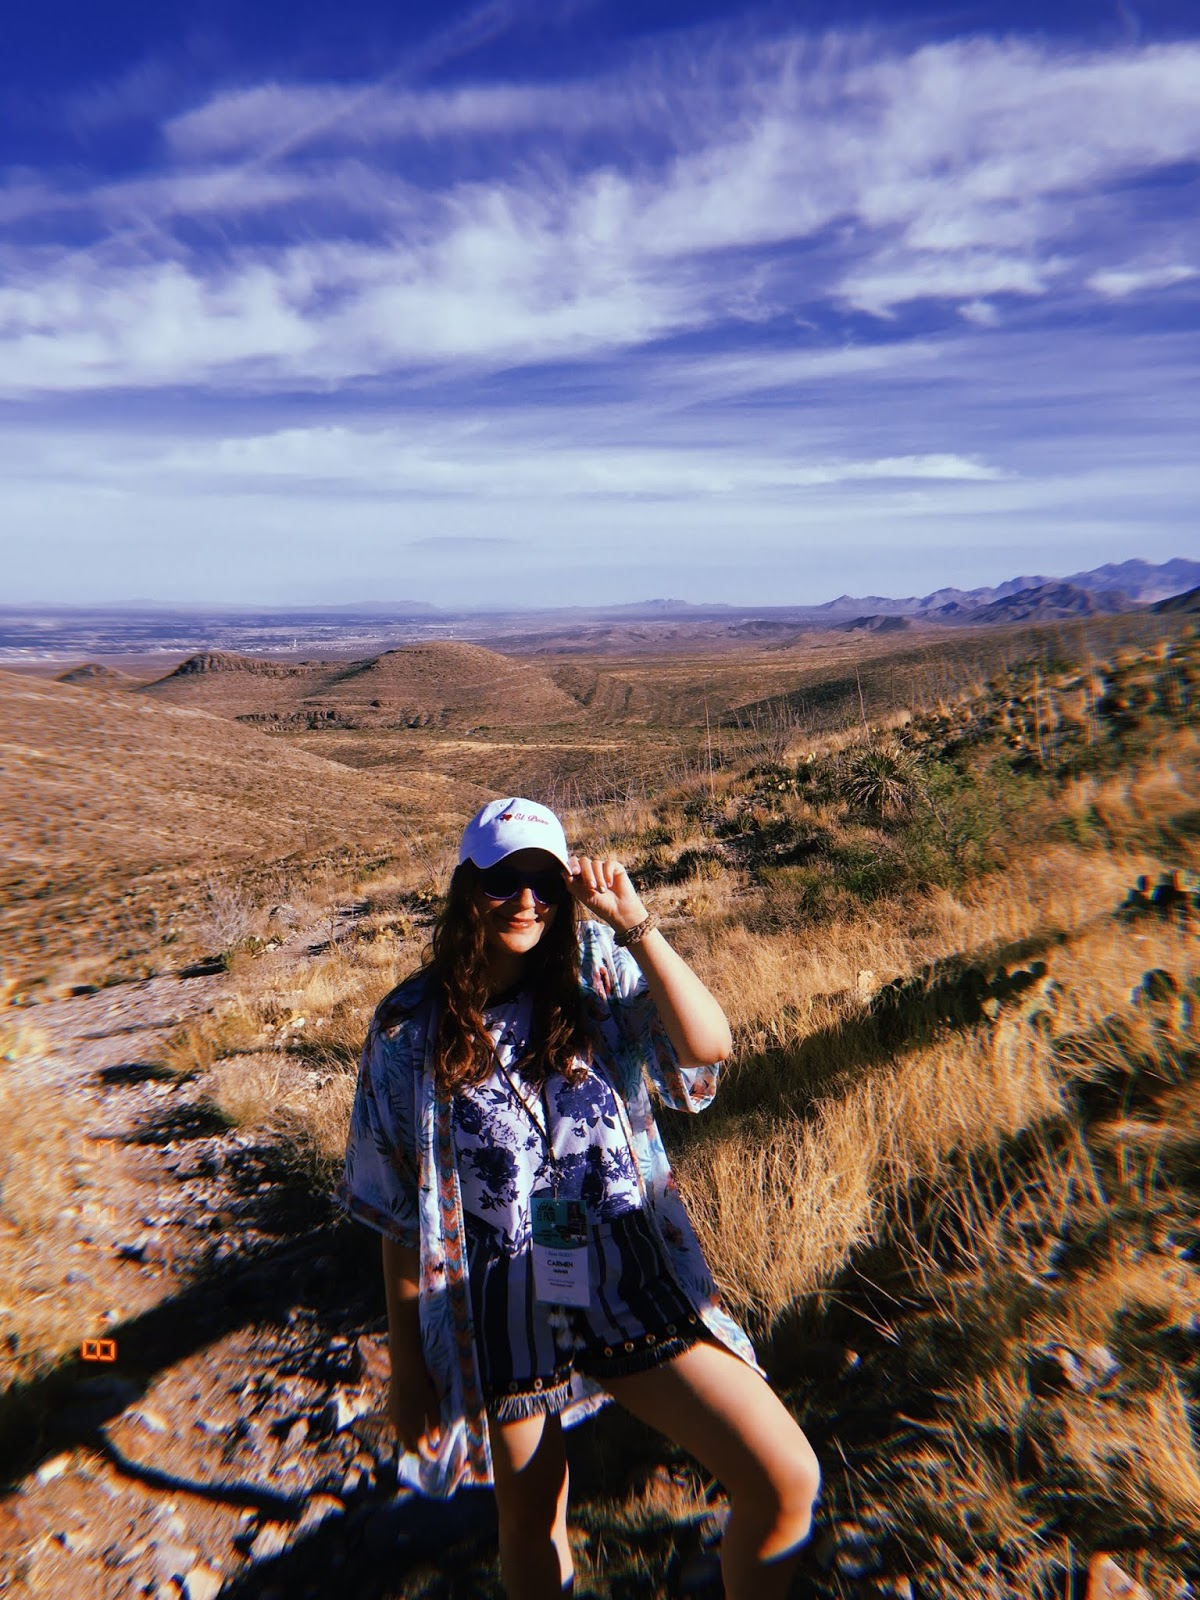 7 things to do at franklin mountains state park in el paso texas clear your mind spend time with nature at franklin mountains state park in el paso texas start off with a peaceful brunch on the mountain then camp publicscrutiny Images